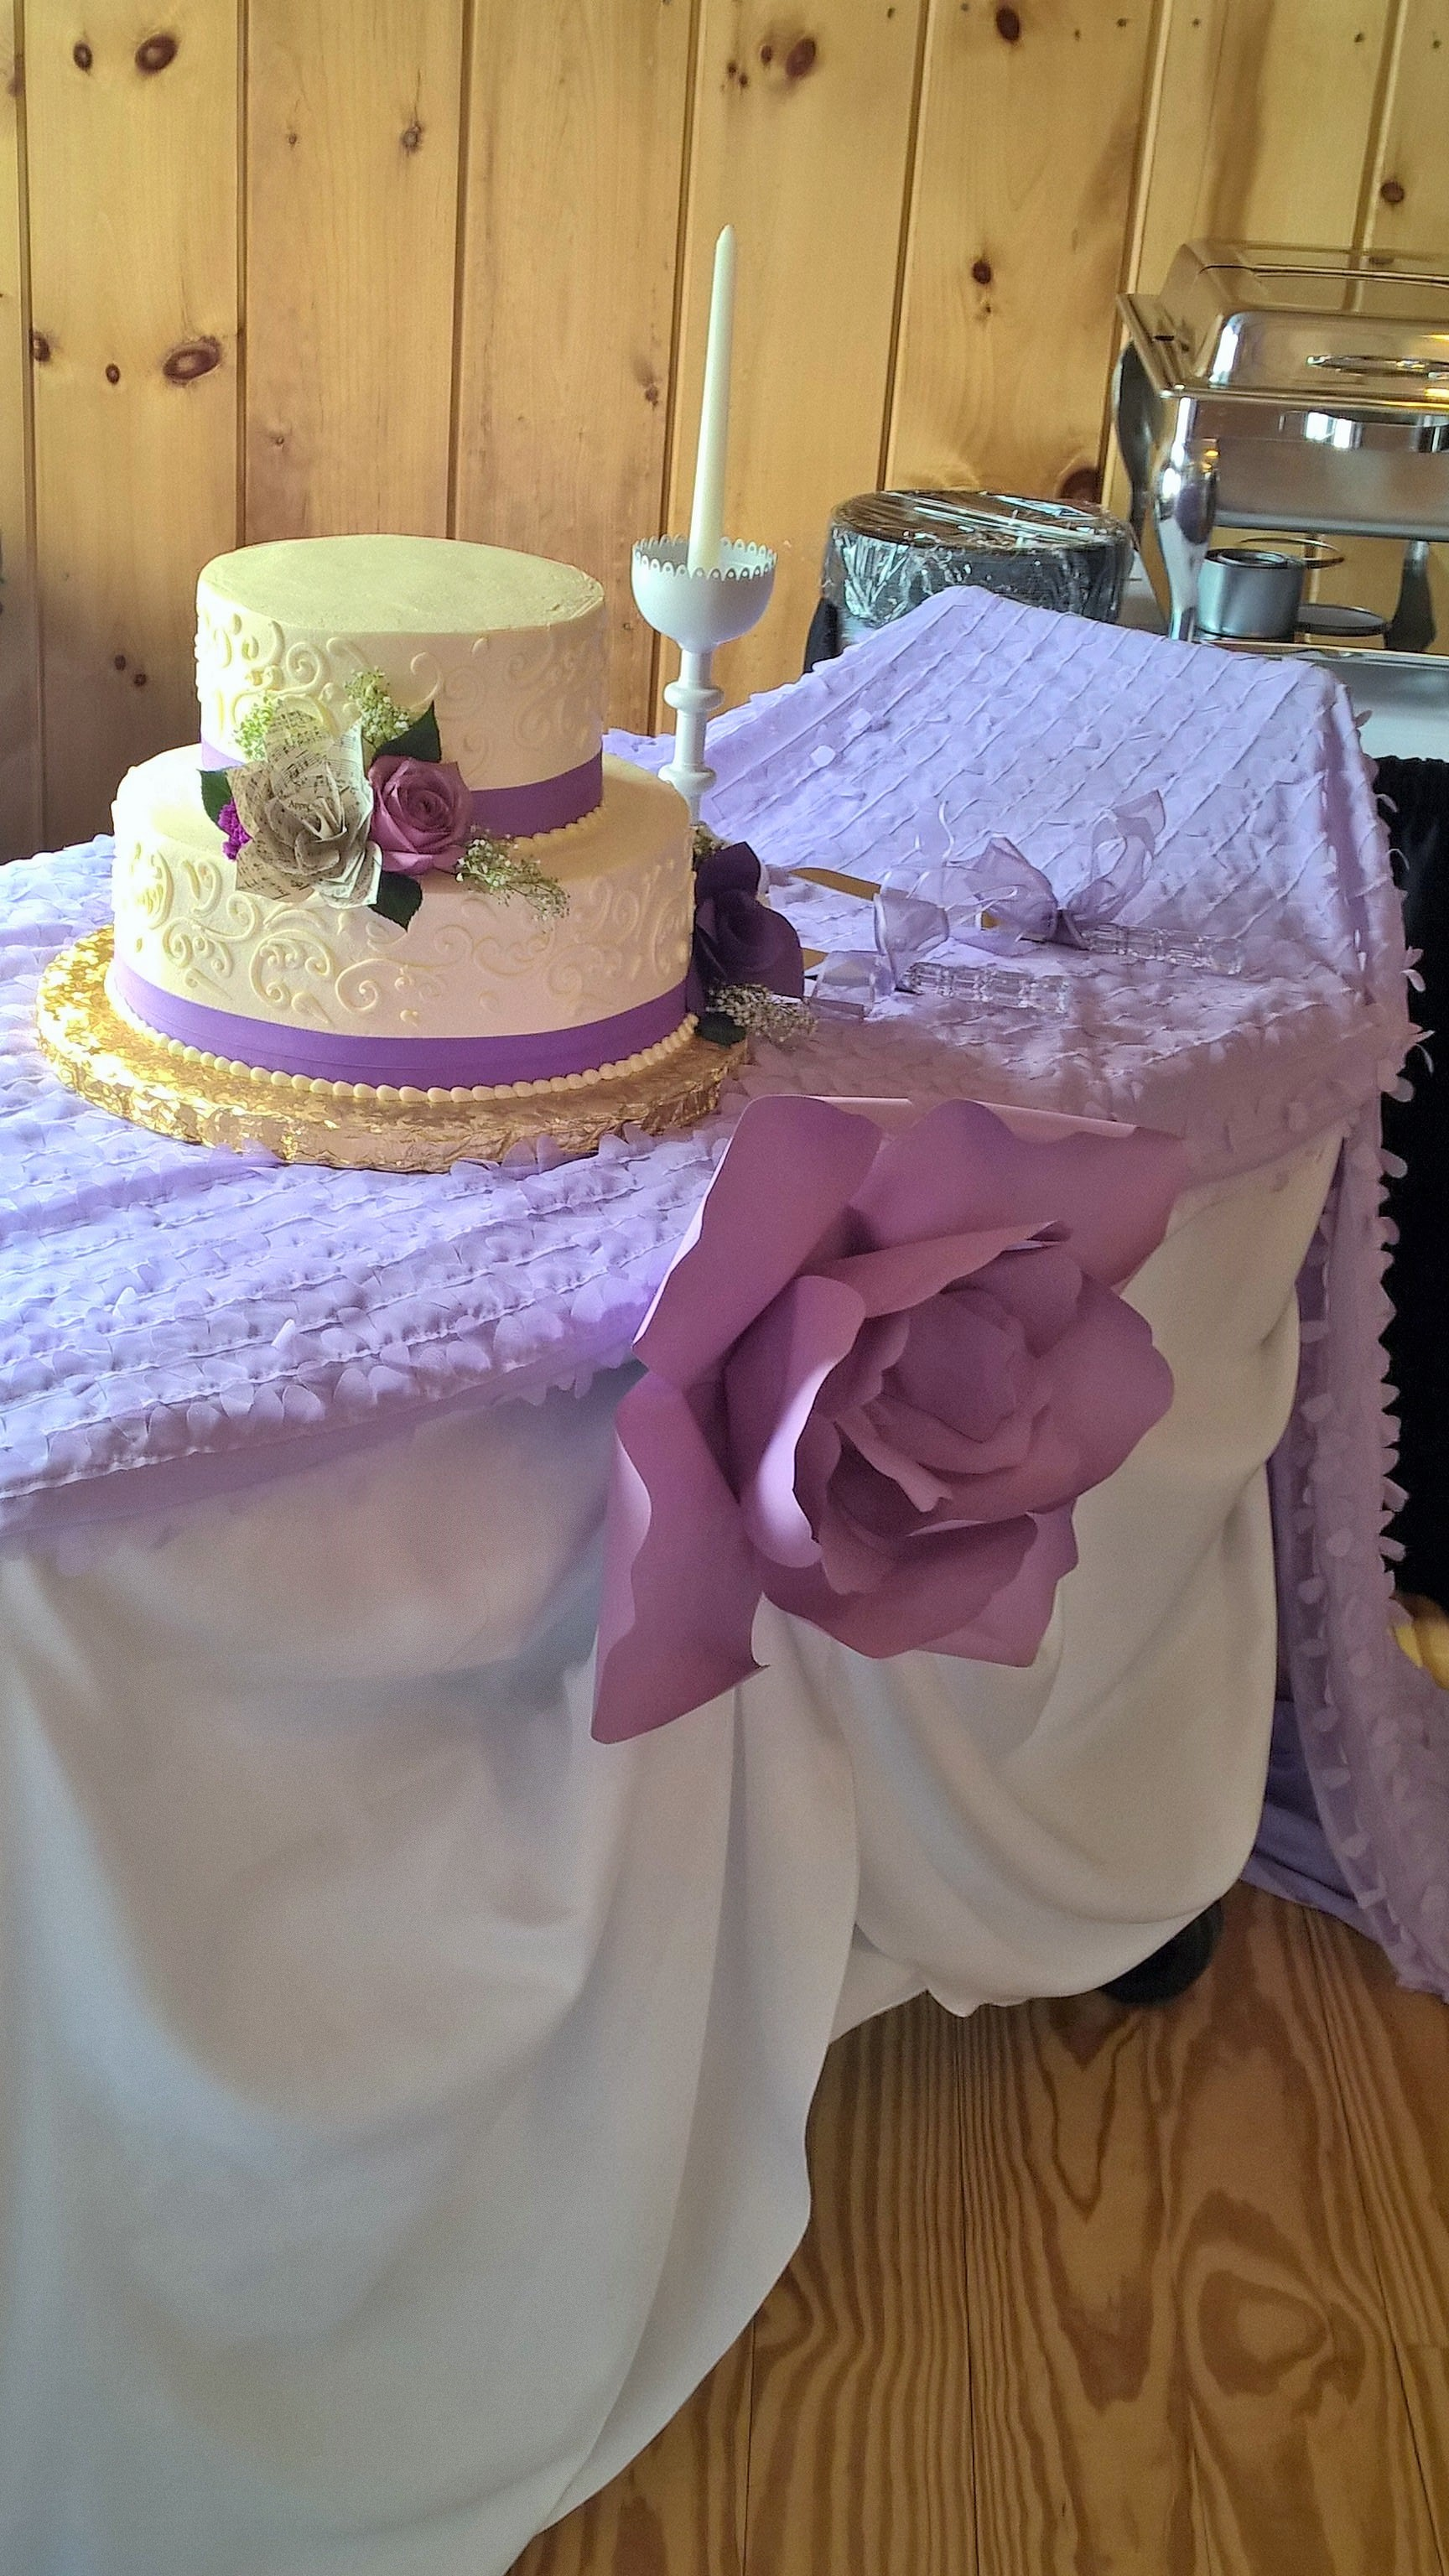 wedding cake on table decorated with purple and white clothes and a large paper purple flower